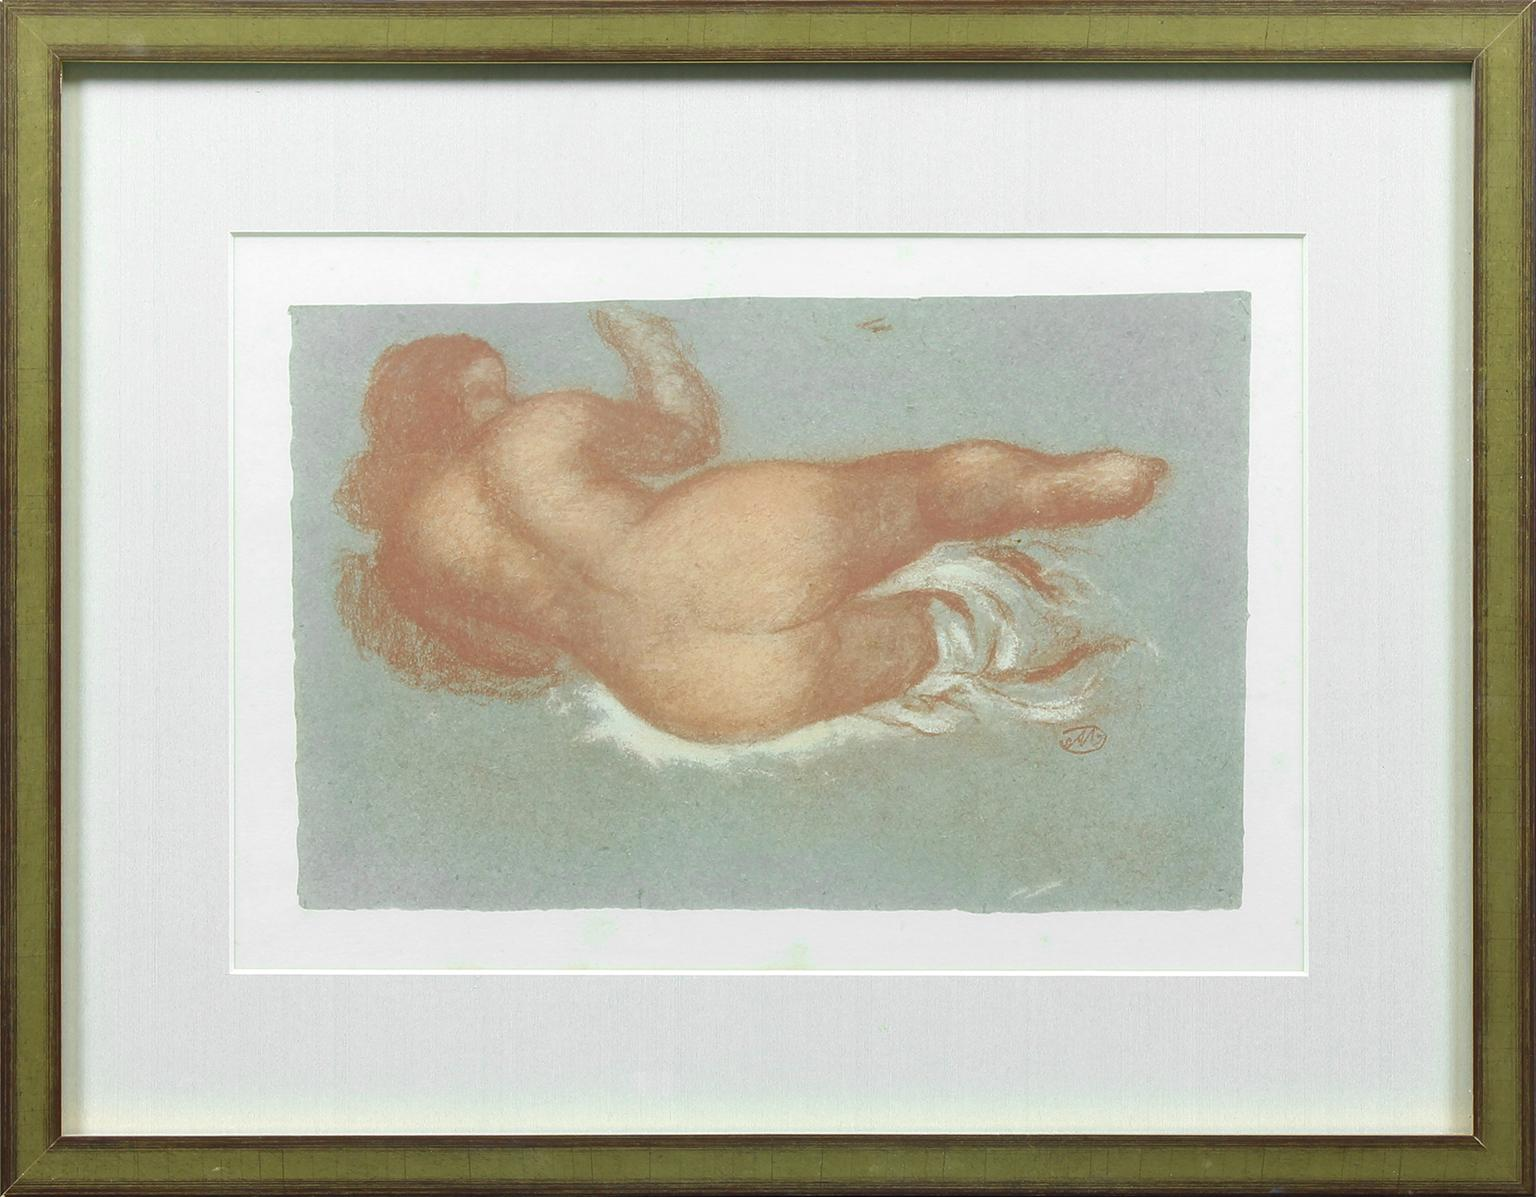 Untitled framed lithograph by Aristide Maillol